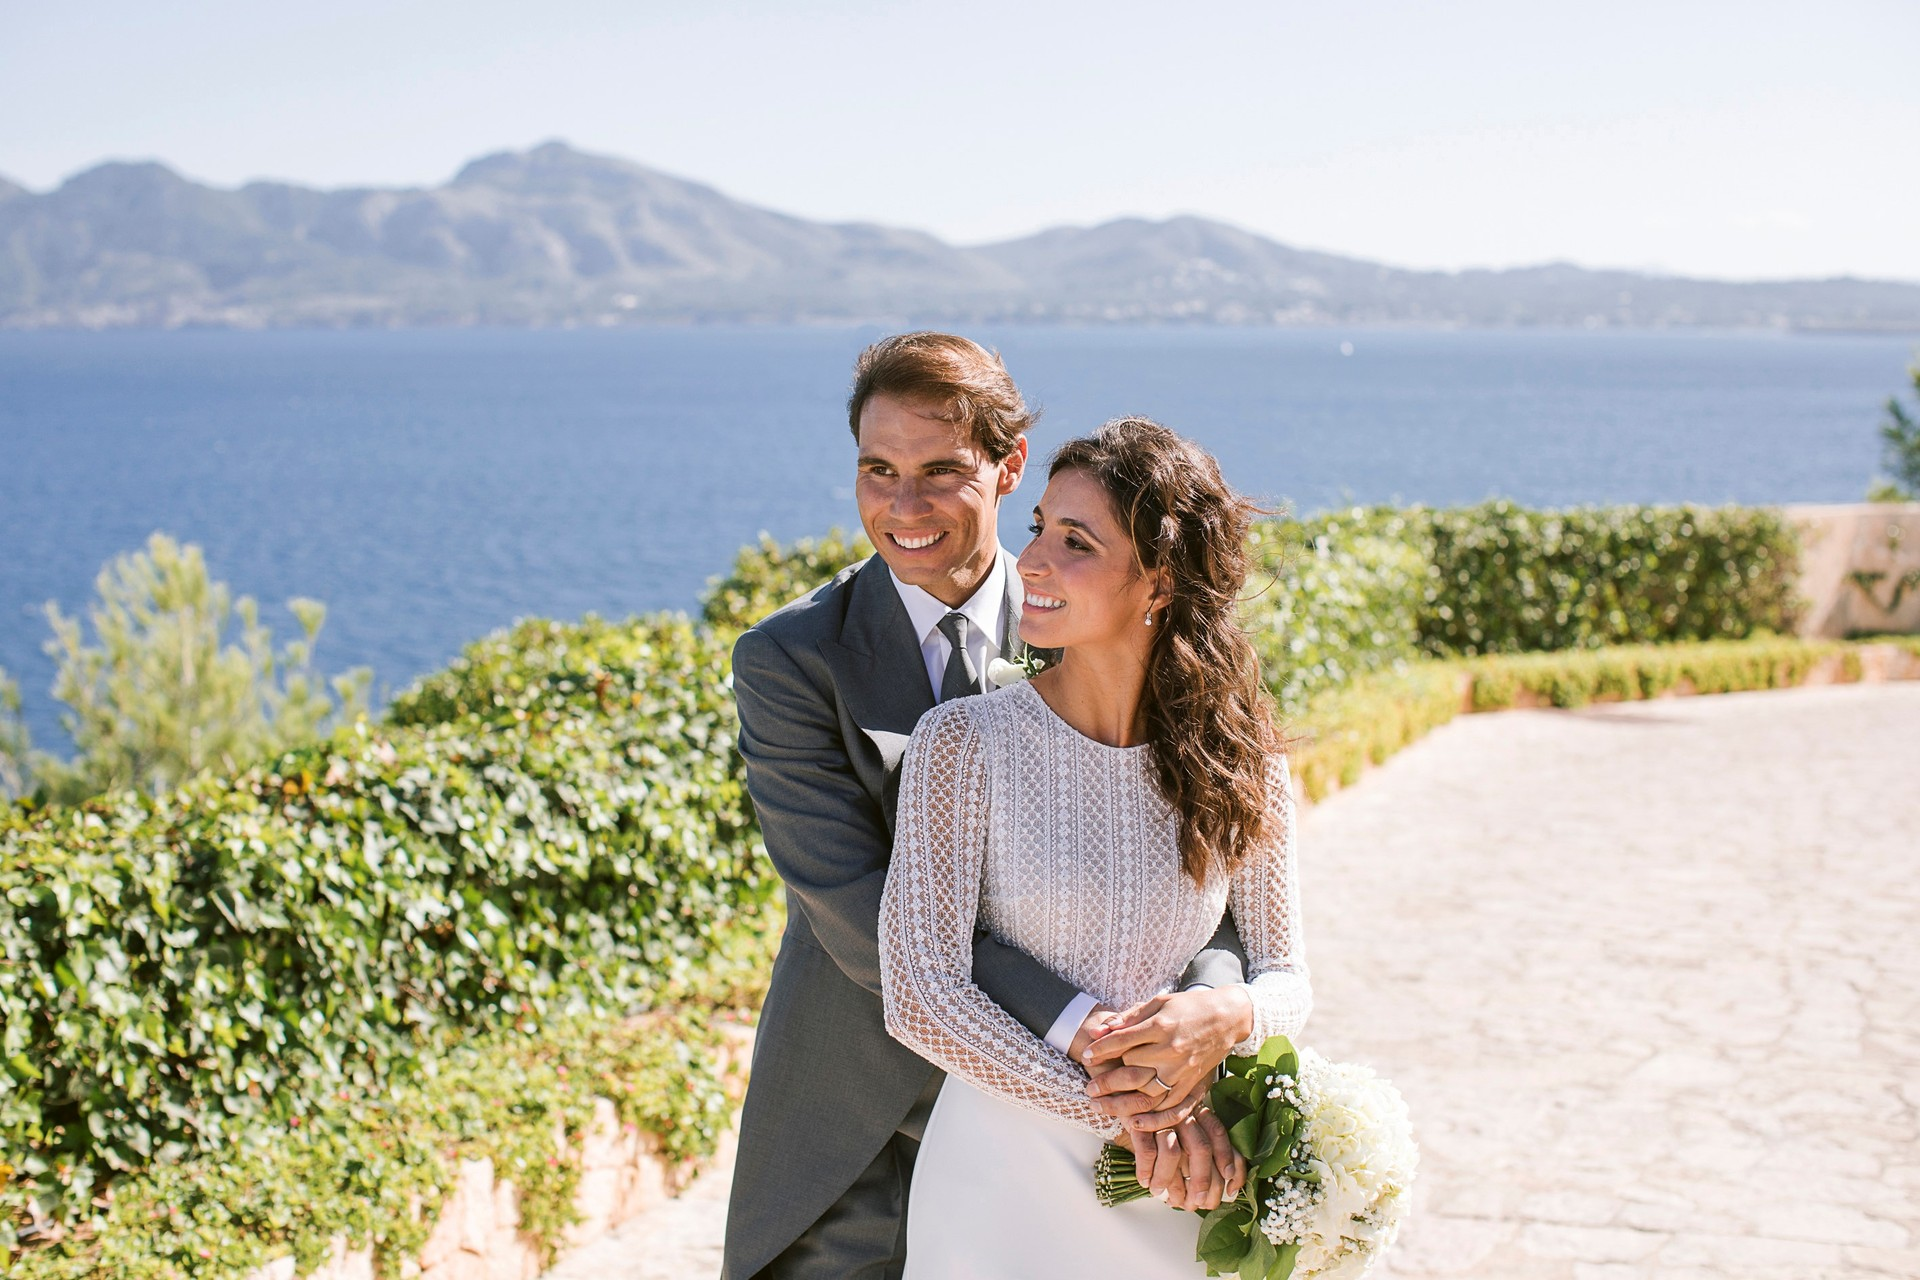 First official photos of Rafael Nadal's wedding made public